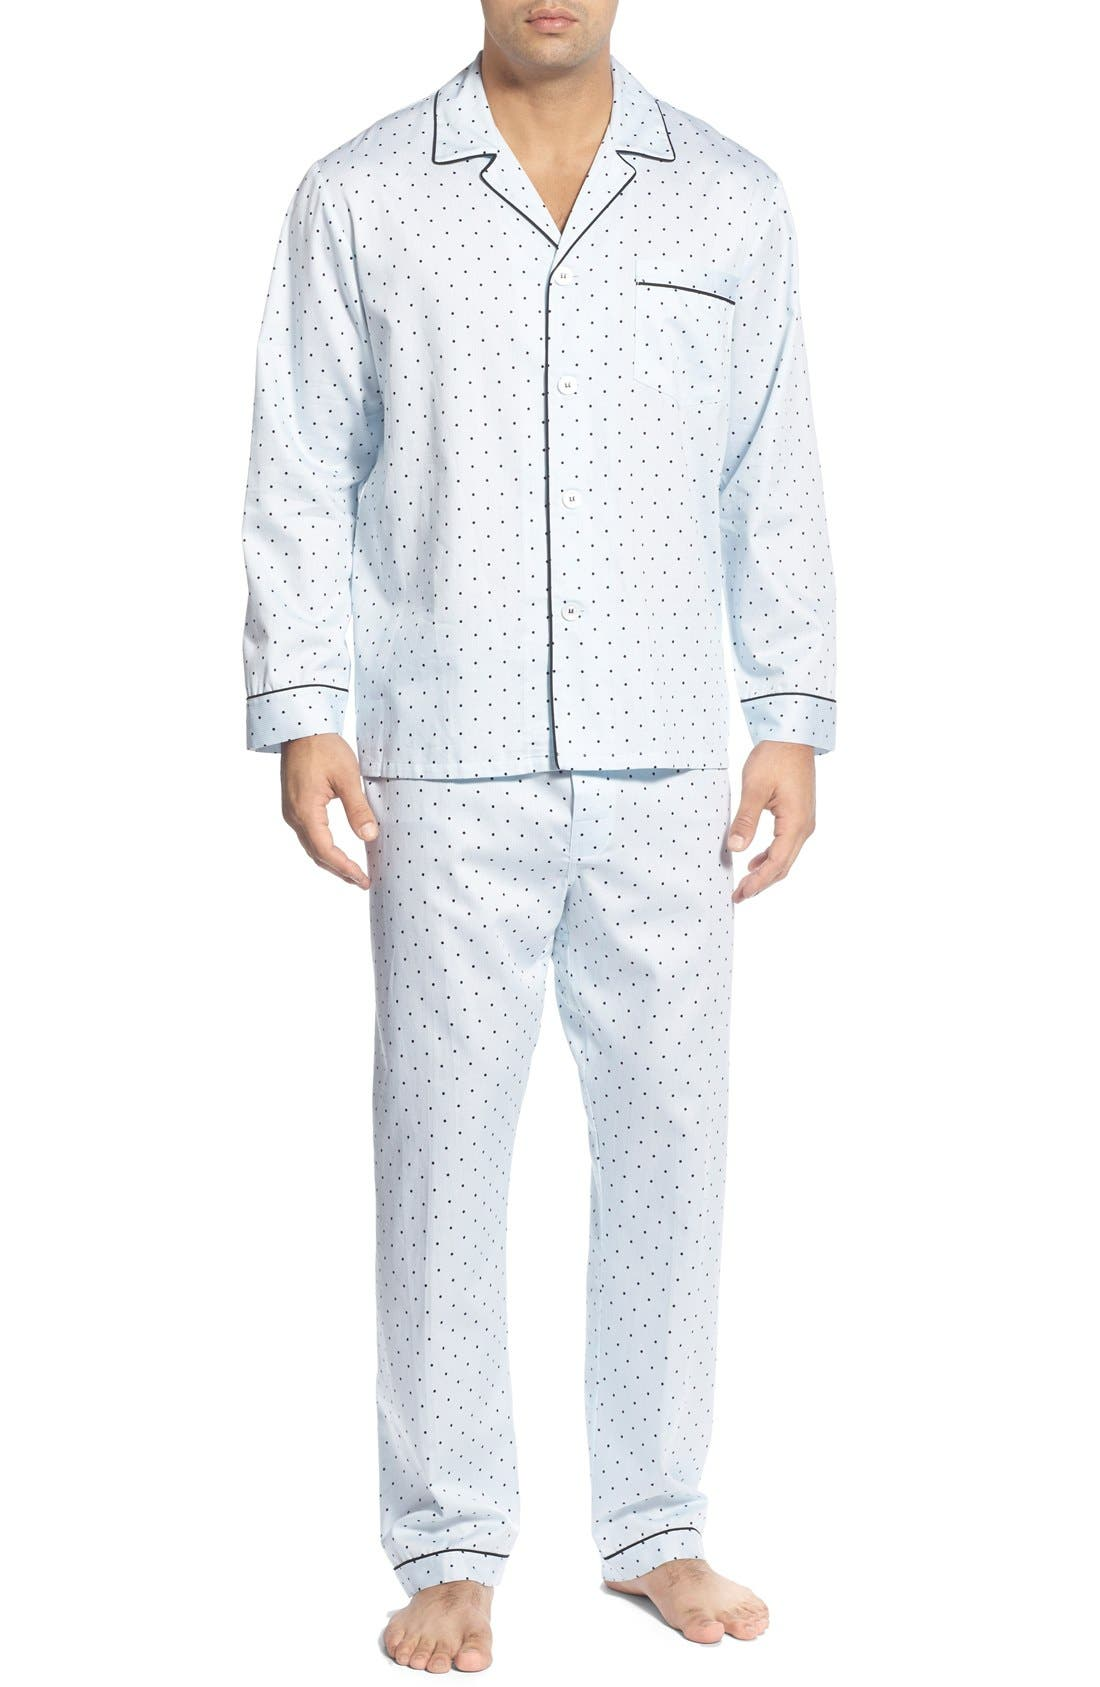 'Twilight' Cotton Pajamas,                             Main thumbnail 1, color,                             Navy Dots